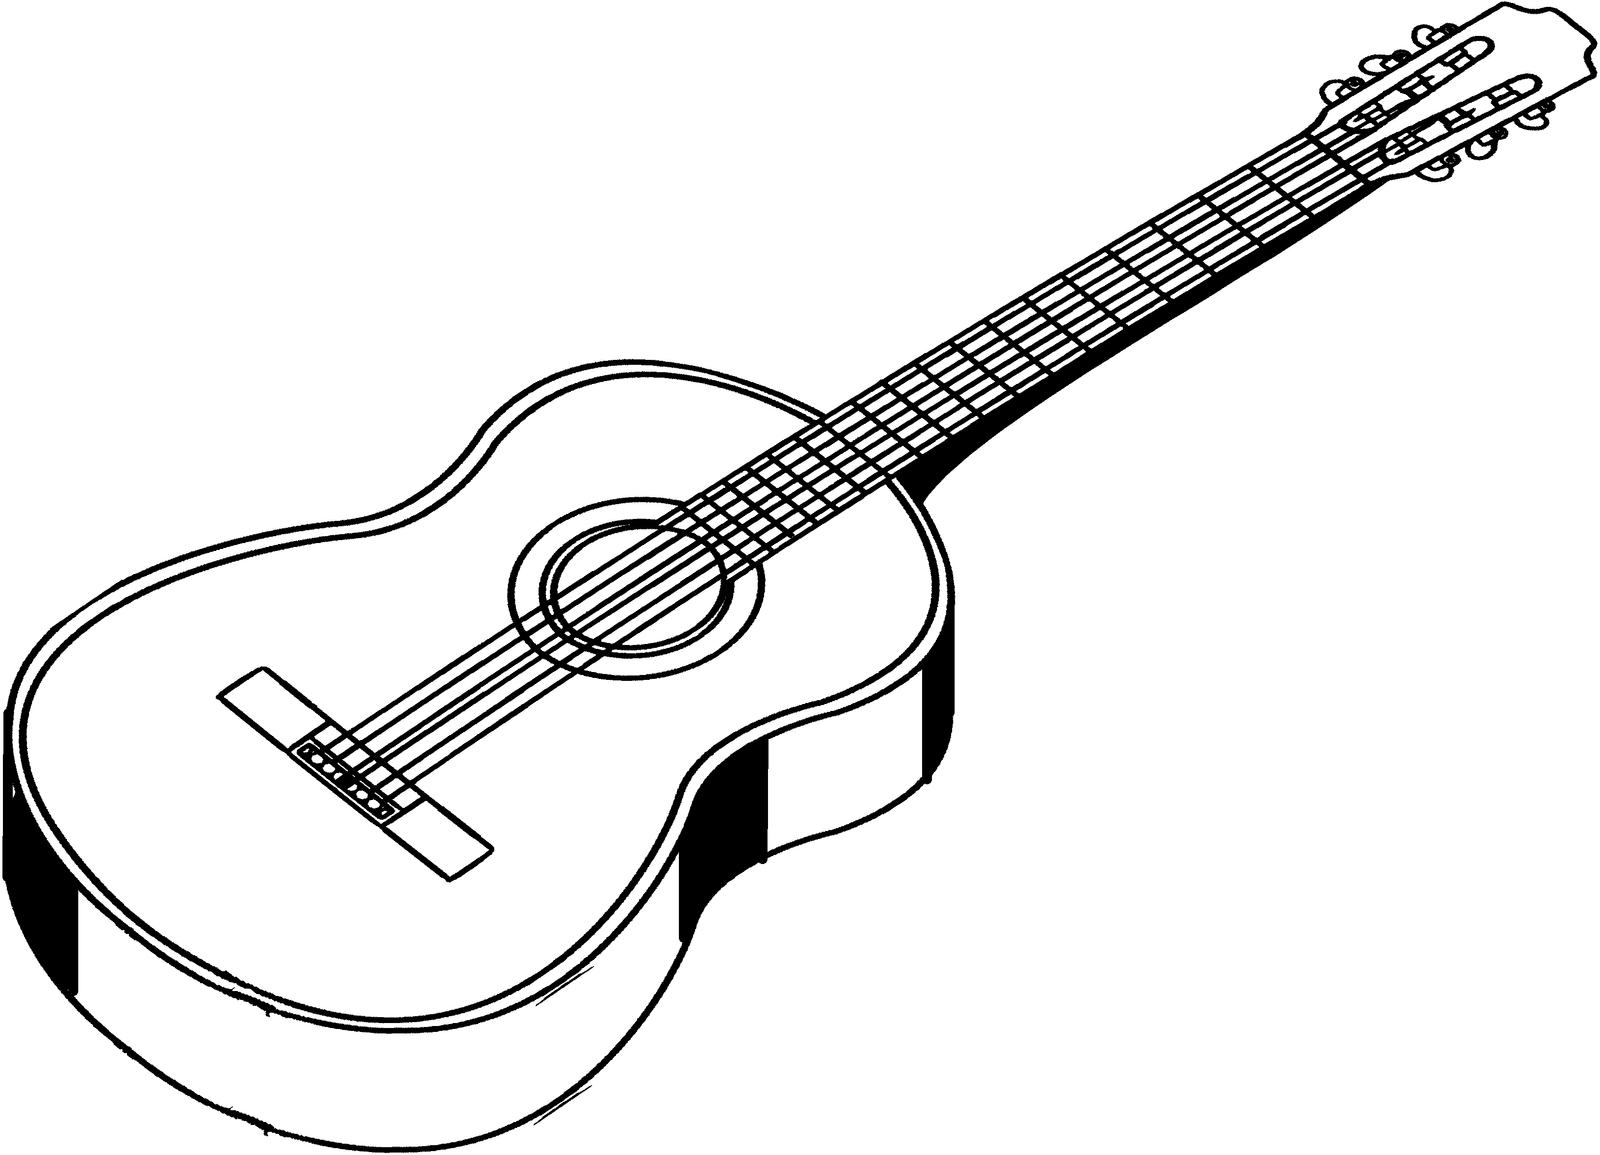 Line art of an acoustic guitar by IHCOYC on DeviantArt